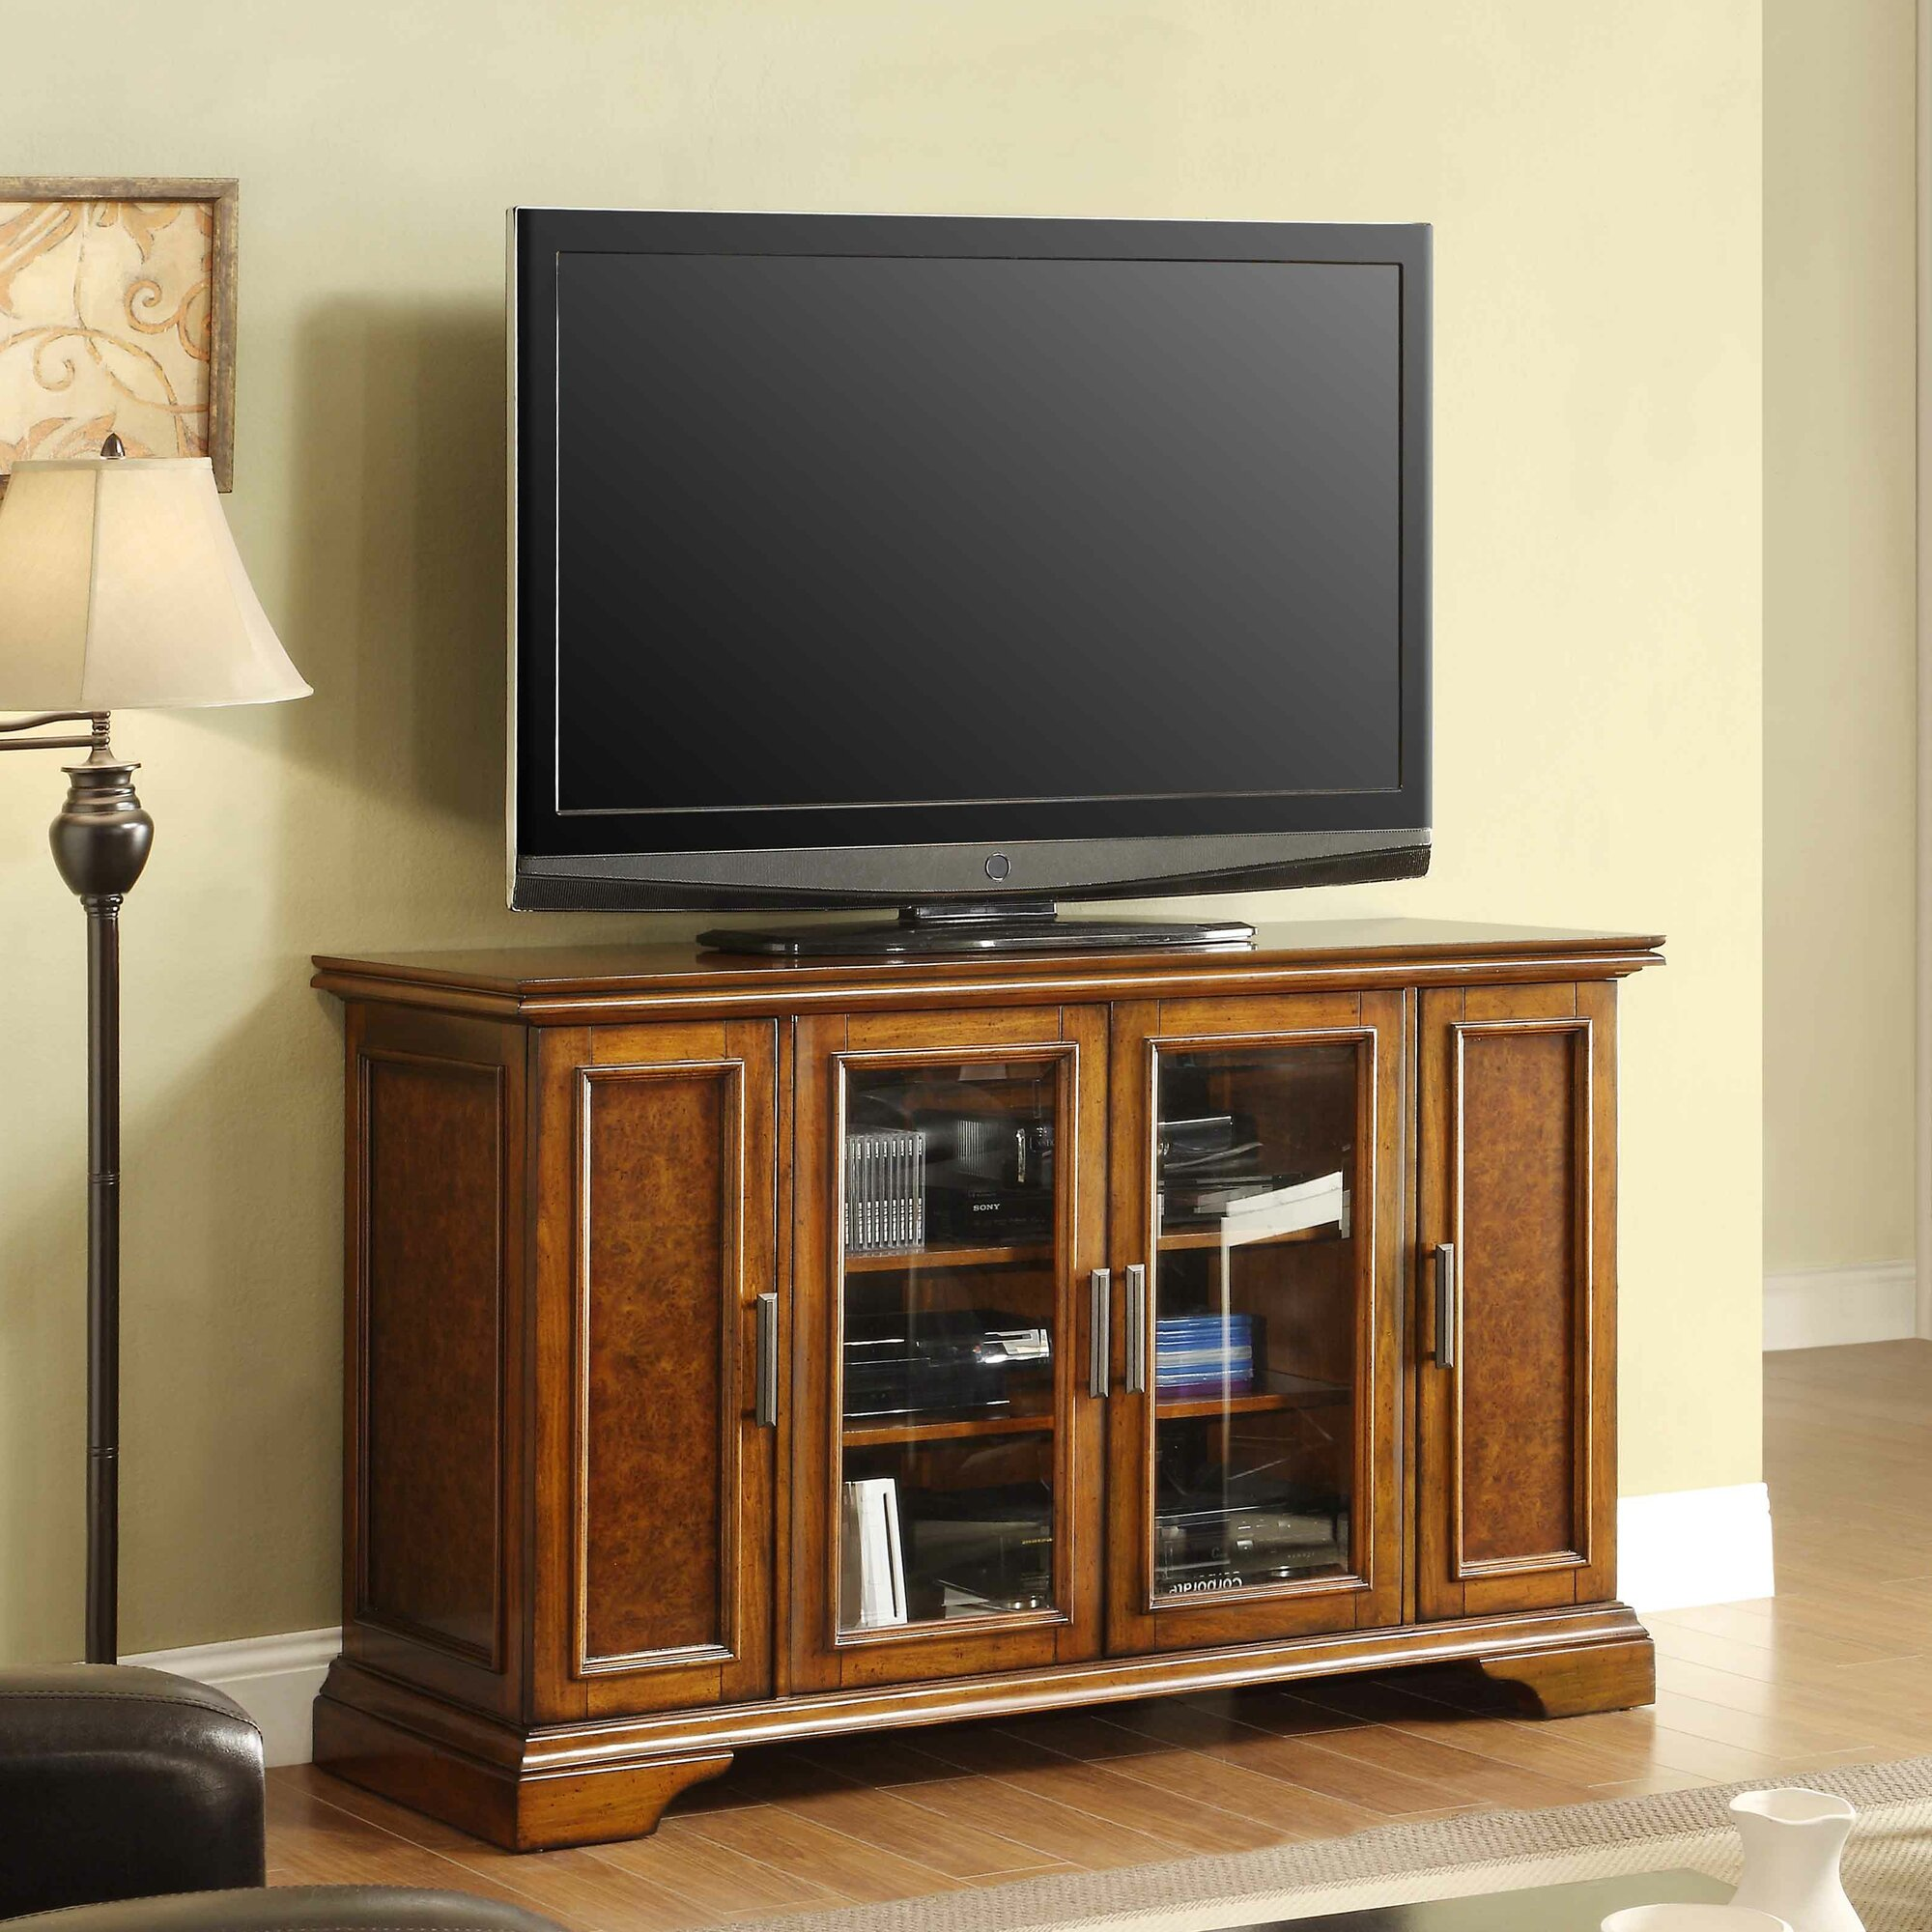 Whalen Furniture San Marcos Square Tv Stand Ebay